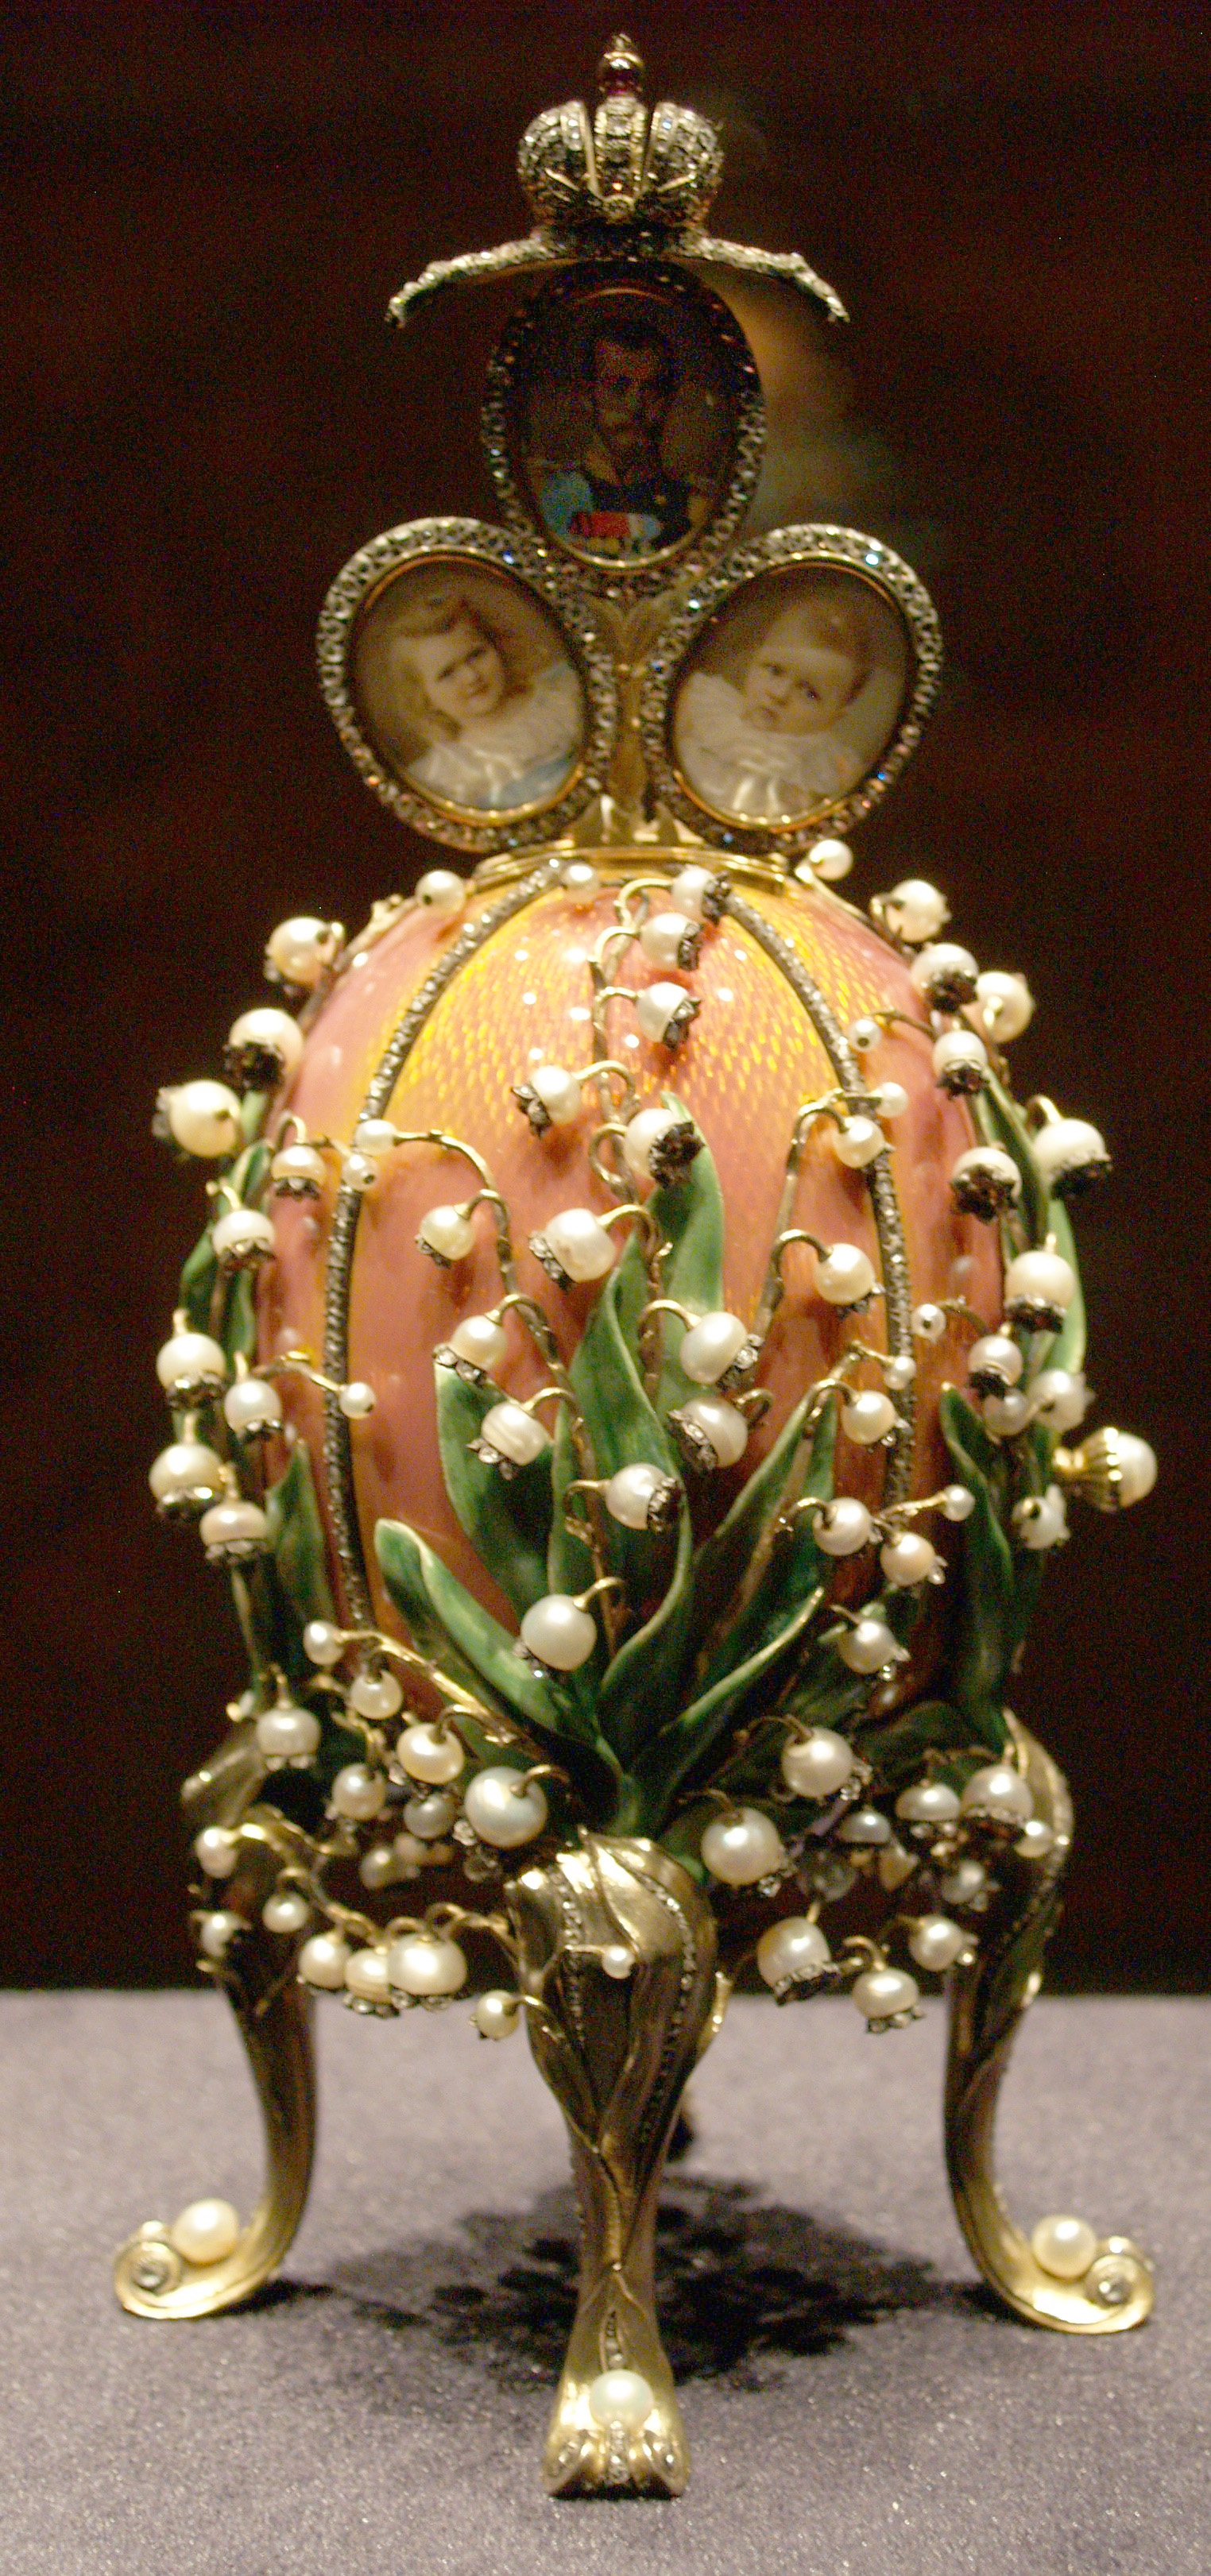 Art Nouveau Wikipedia Lilies Of The Valley Fabergé Egg Wikipedia